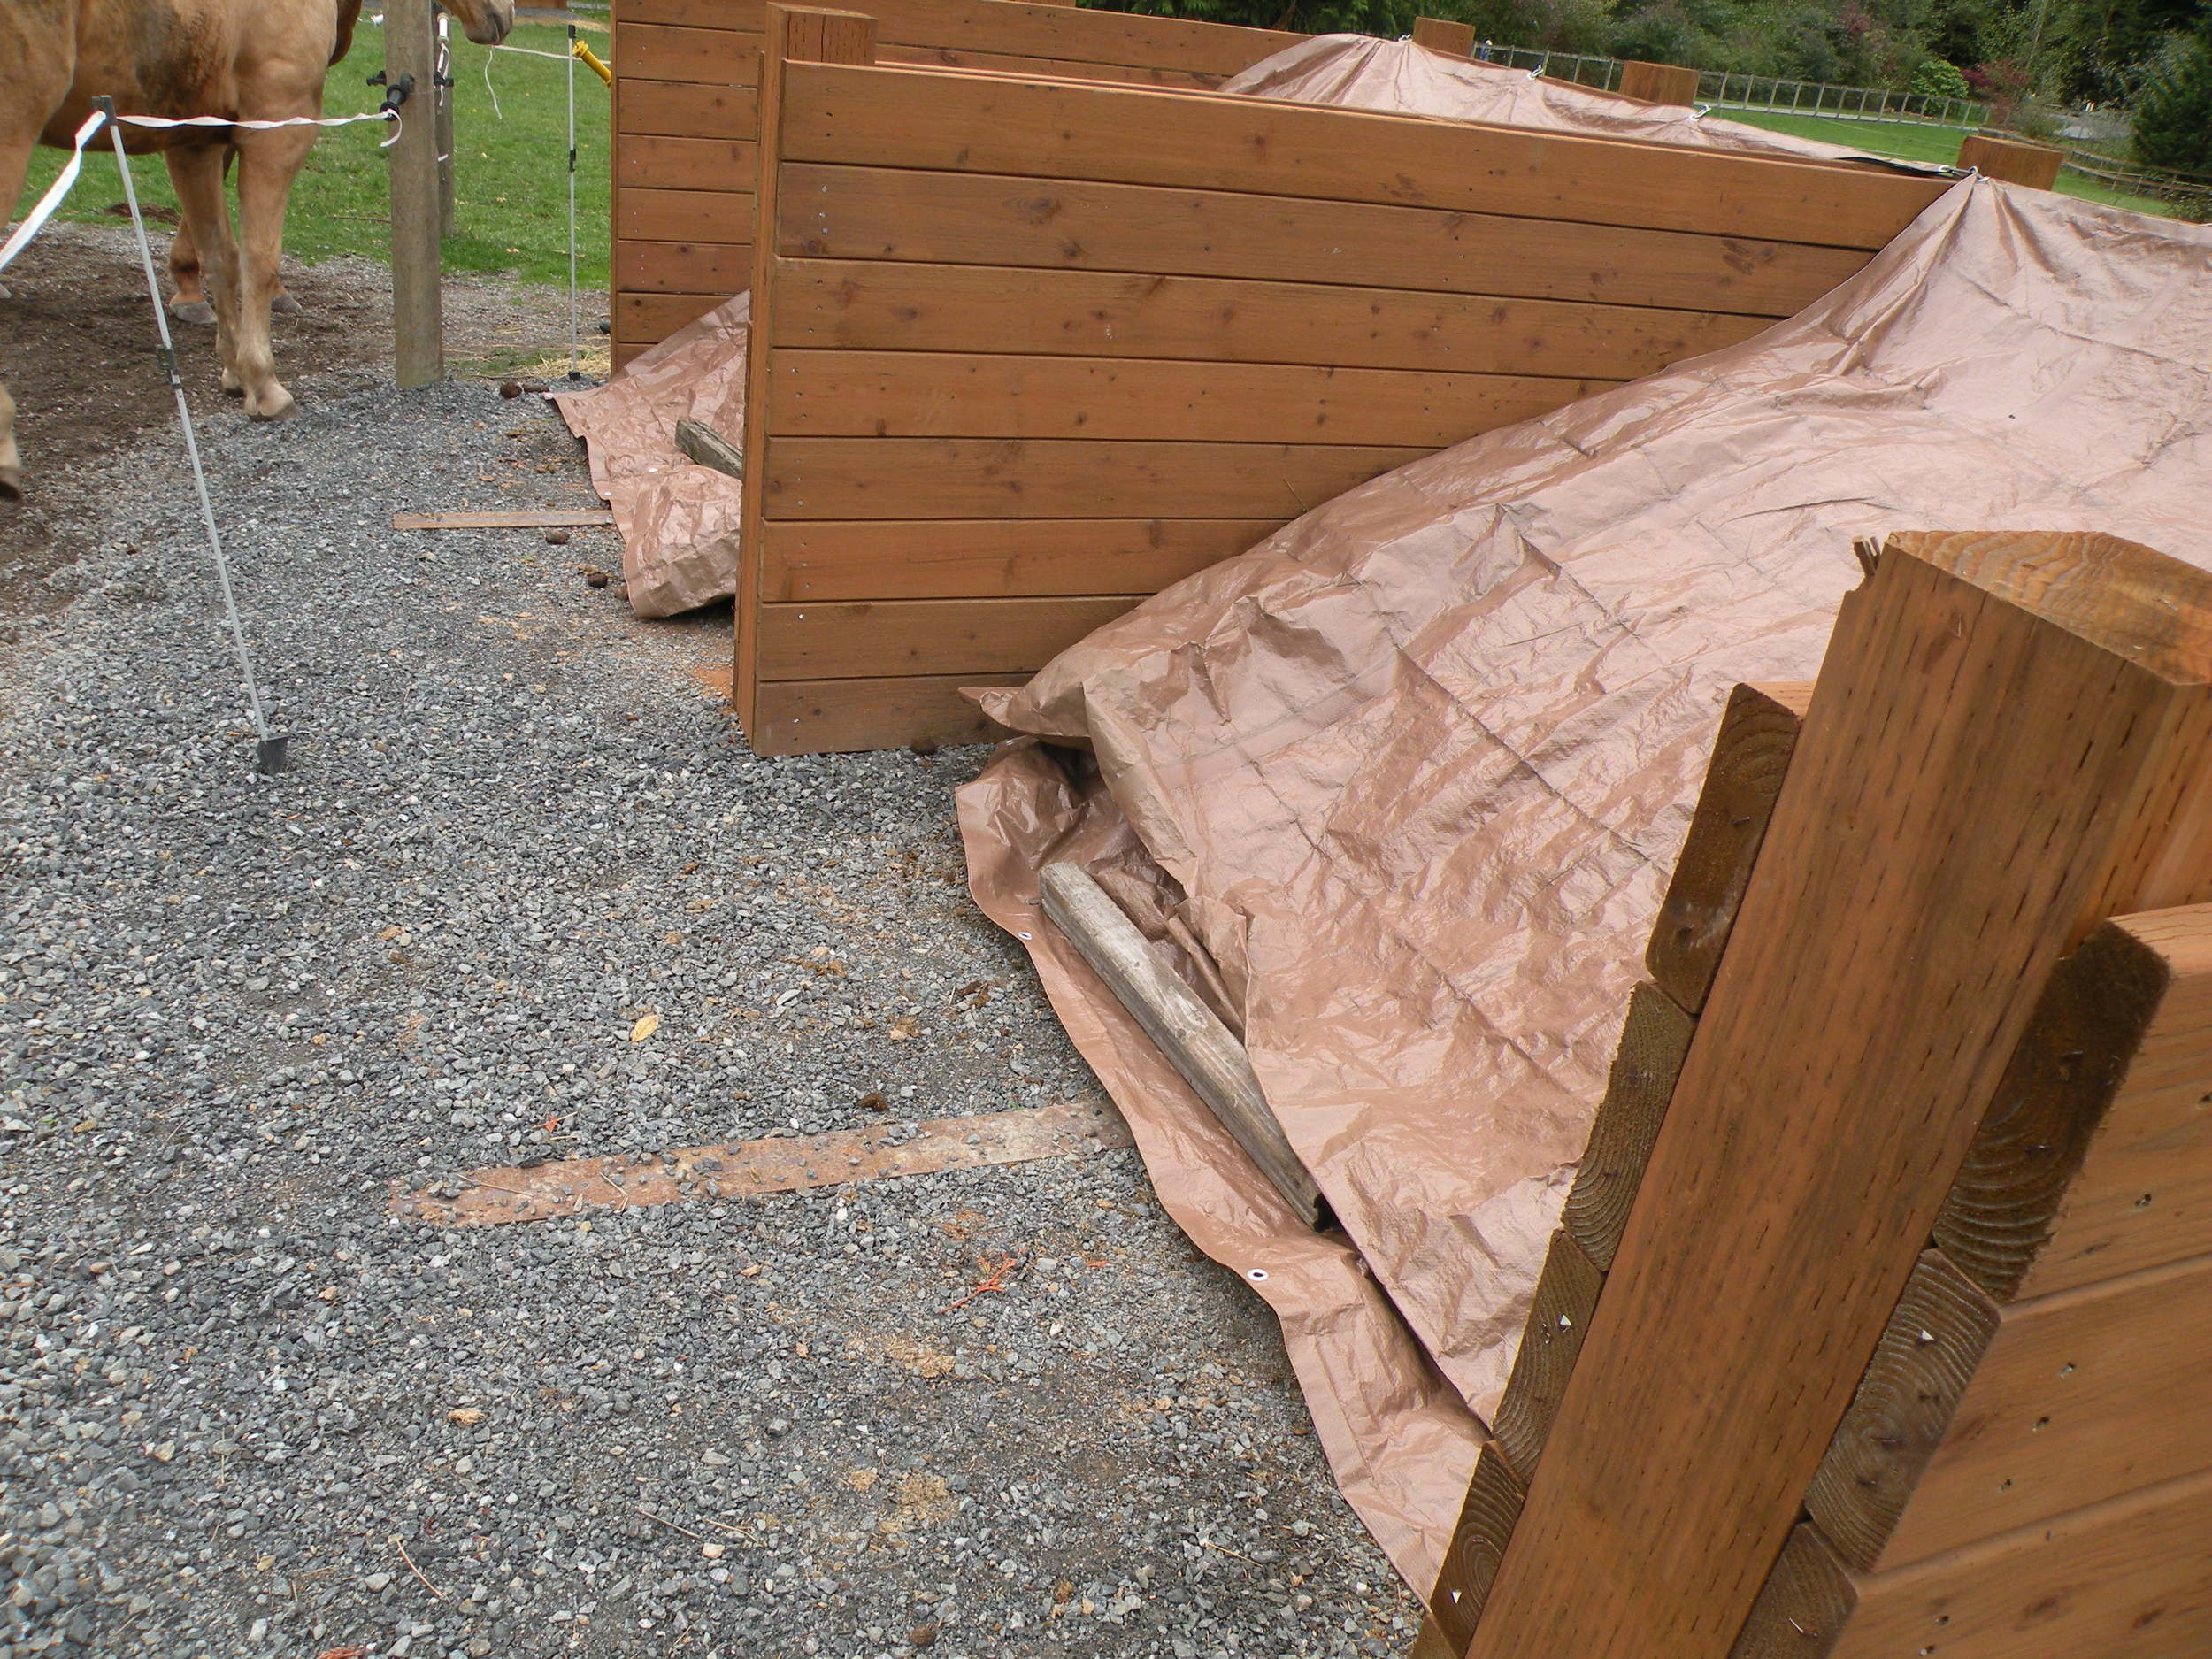 Covering your manure piles can be as easy as adding tarps and weighing them down with boards or bricks.